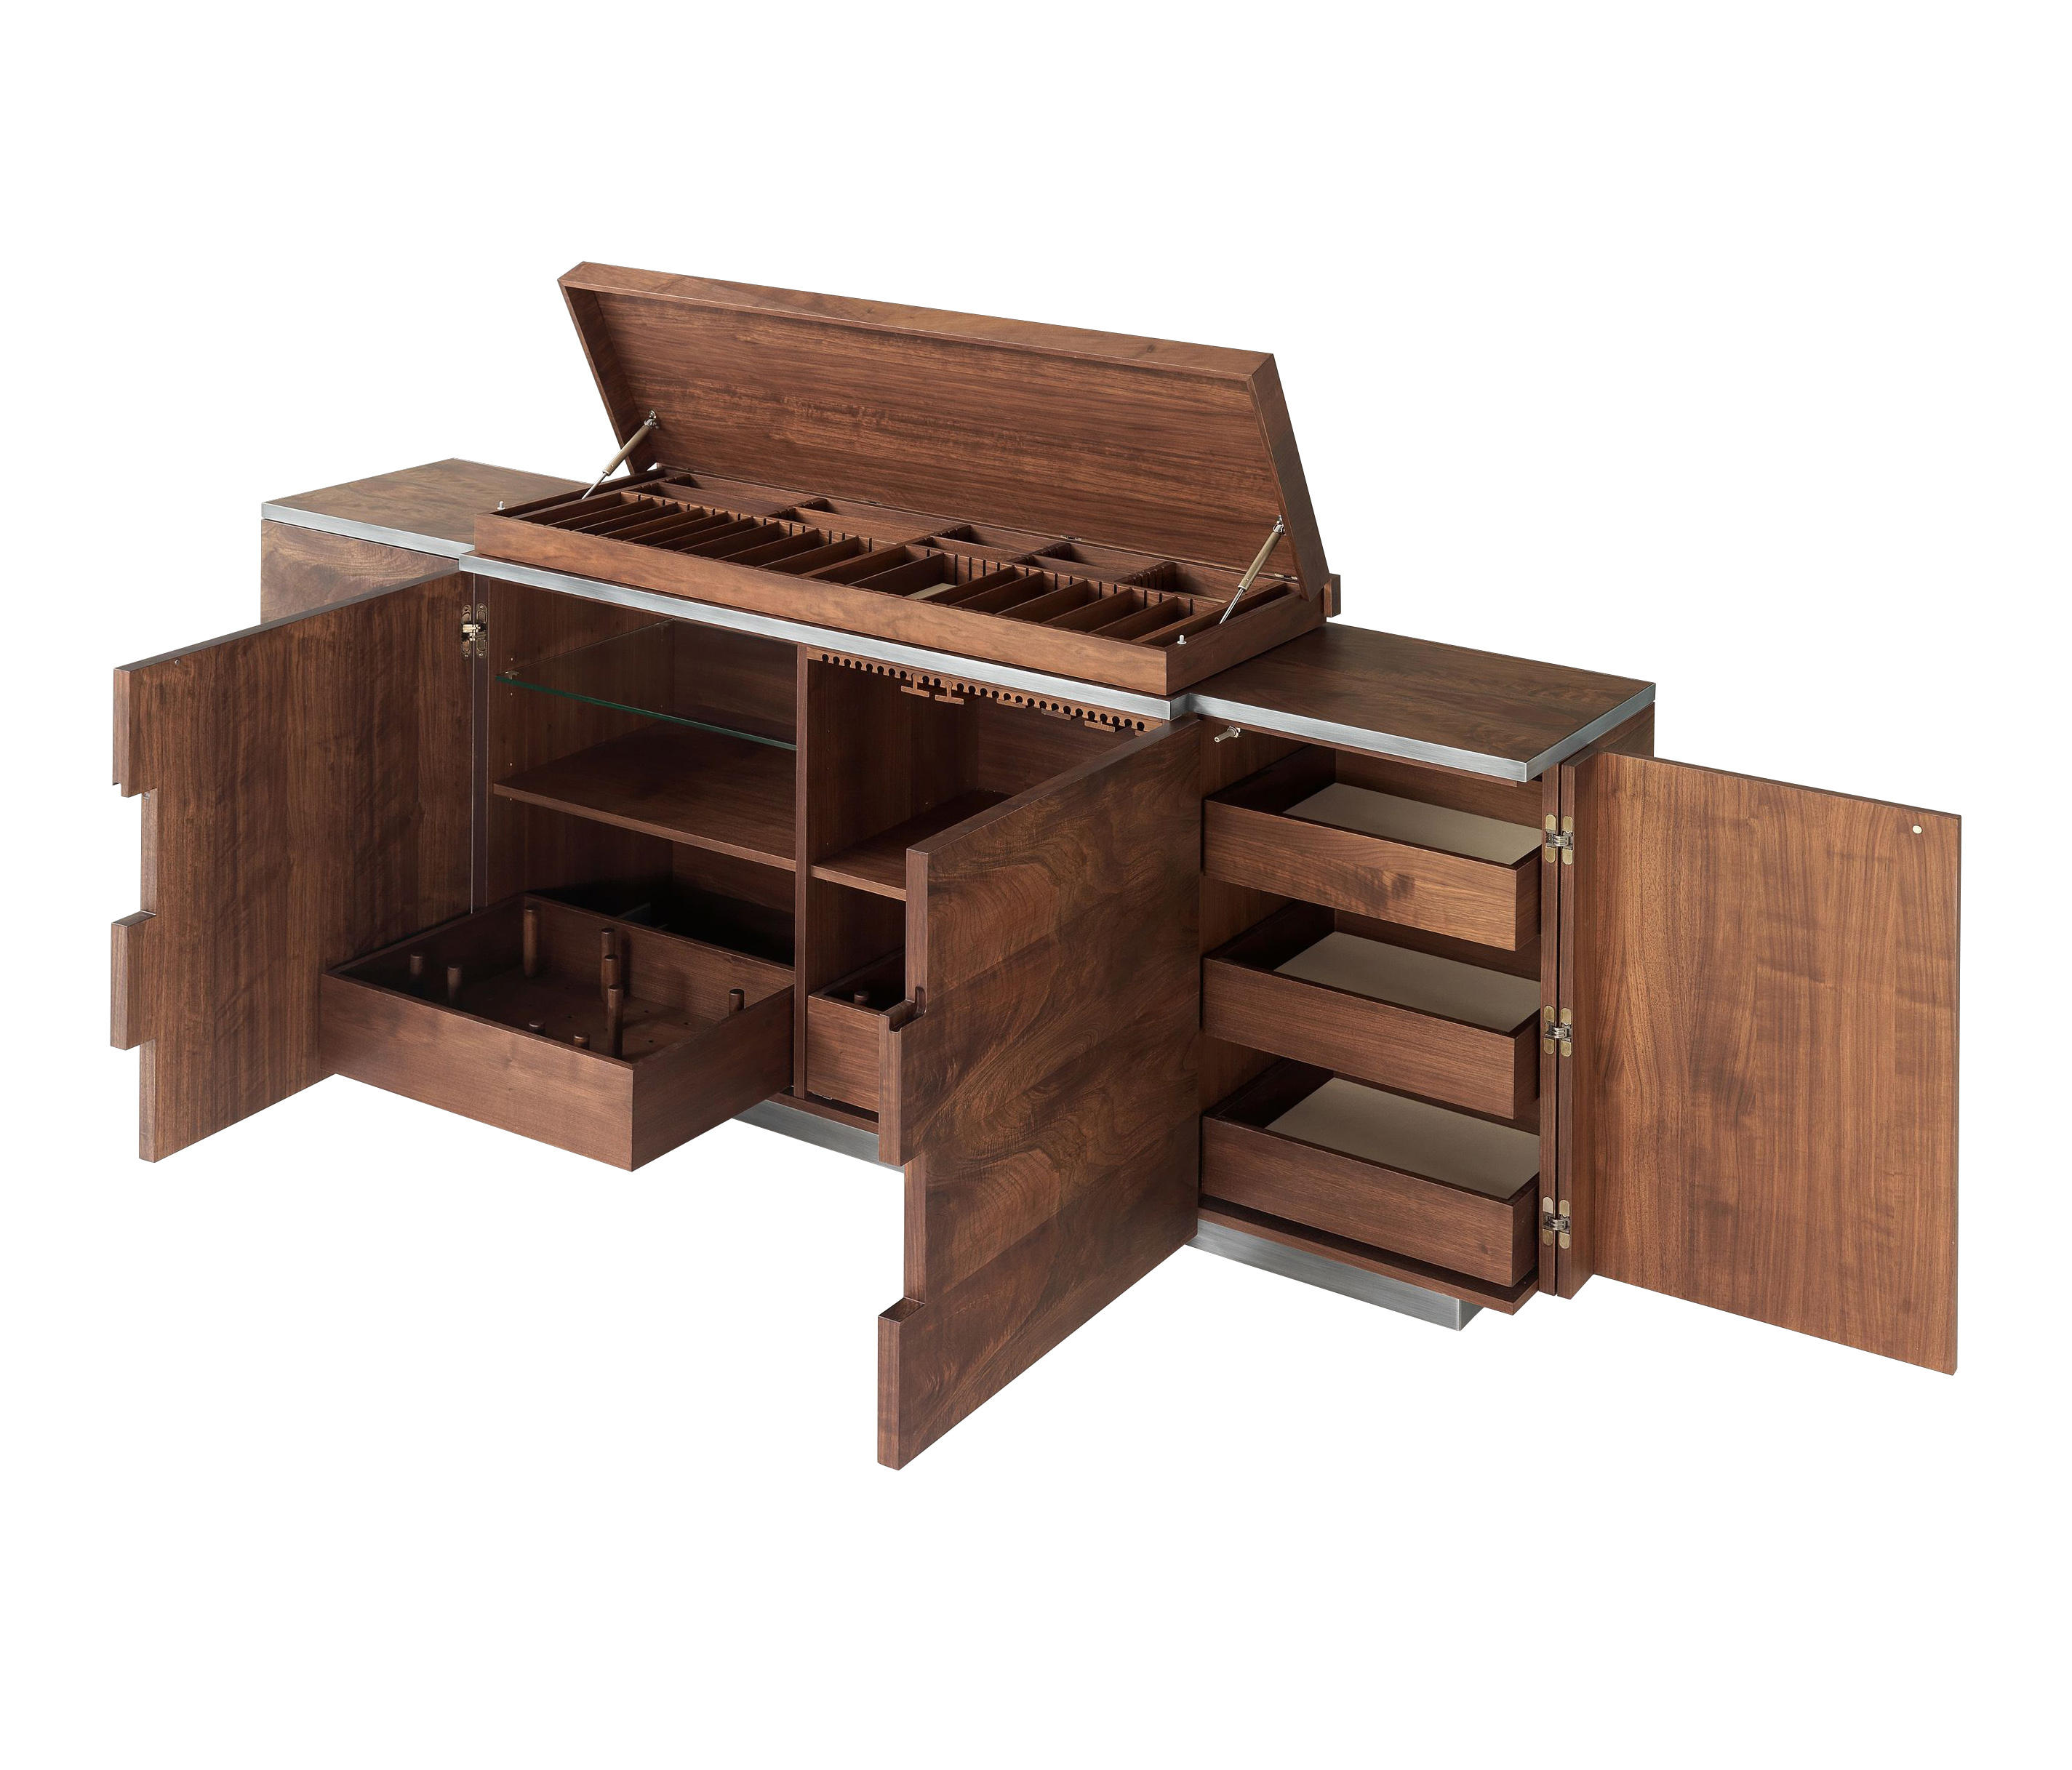 Attractive ... Unico Sideboard With Cutlery Drawer By MOBILFRESNO ALTERNATIVE |  Sideboards ...